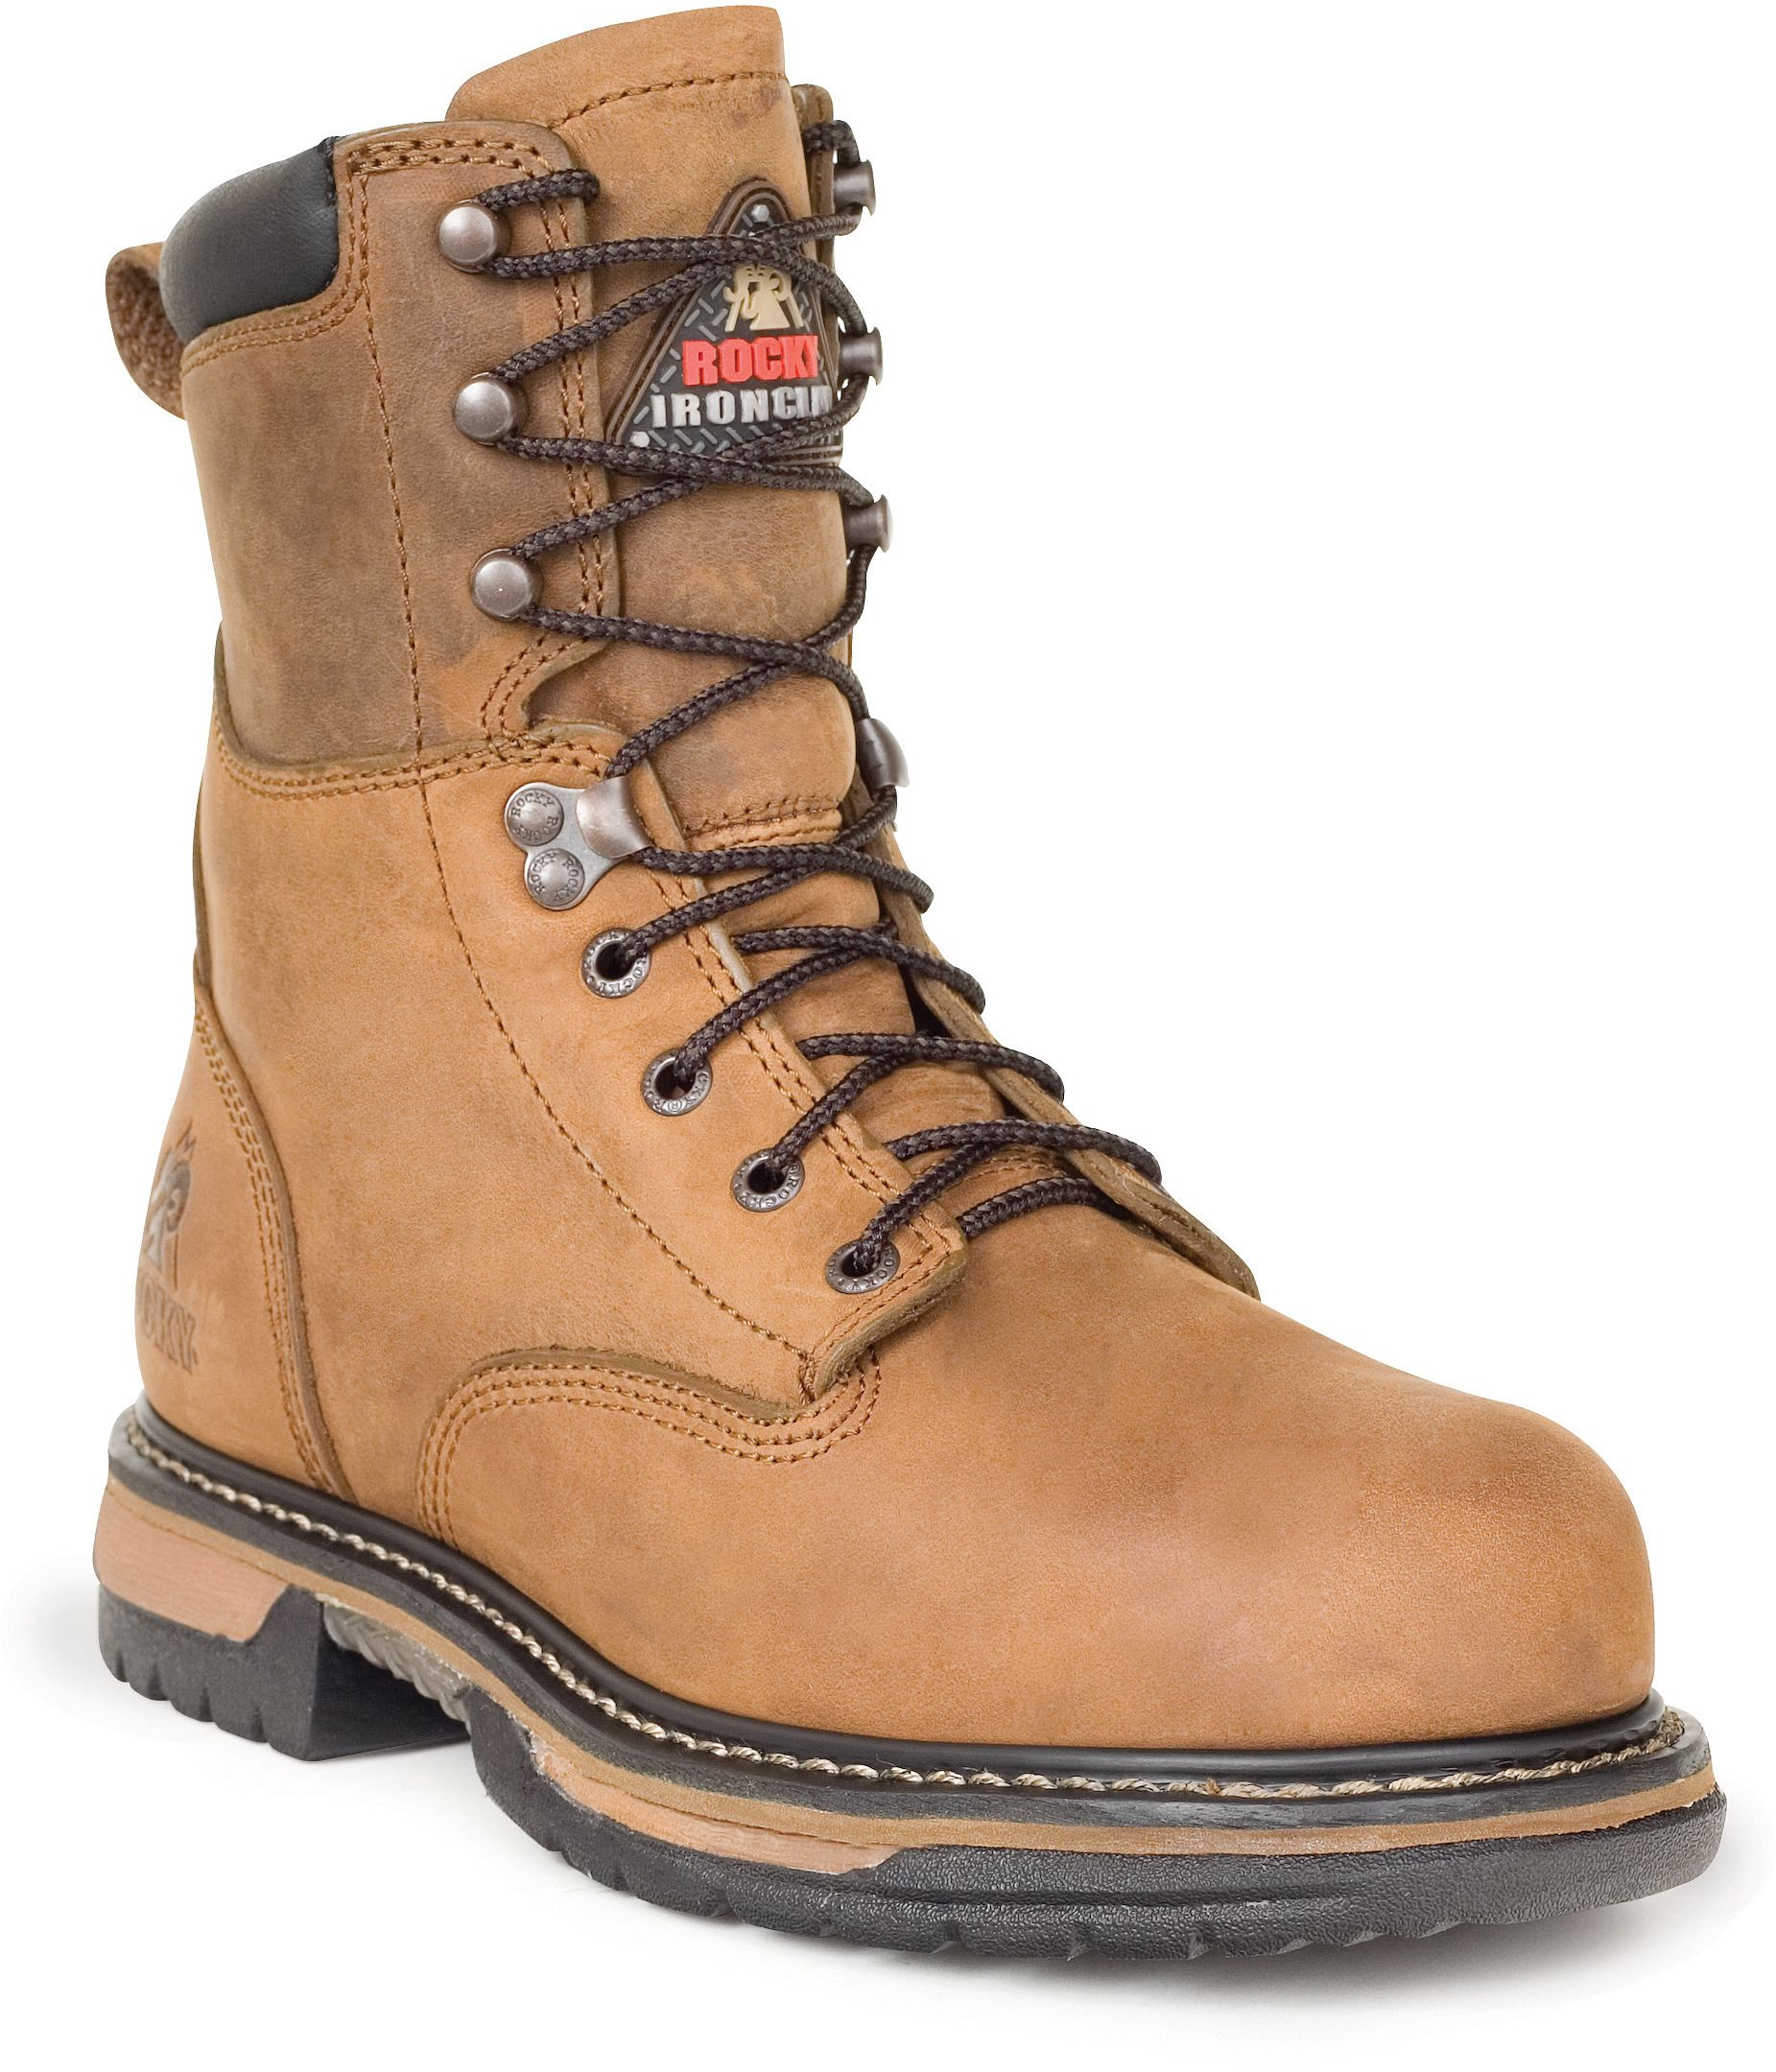 6692 Men's Safety Steel Ironclad Rocky Boots - Brown | Rocky Boots ...